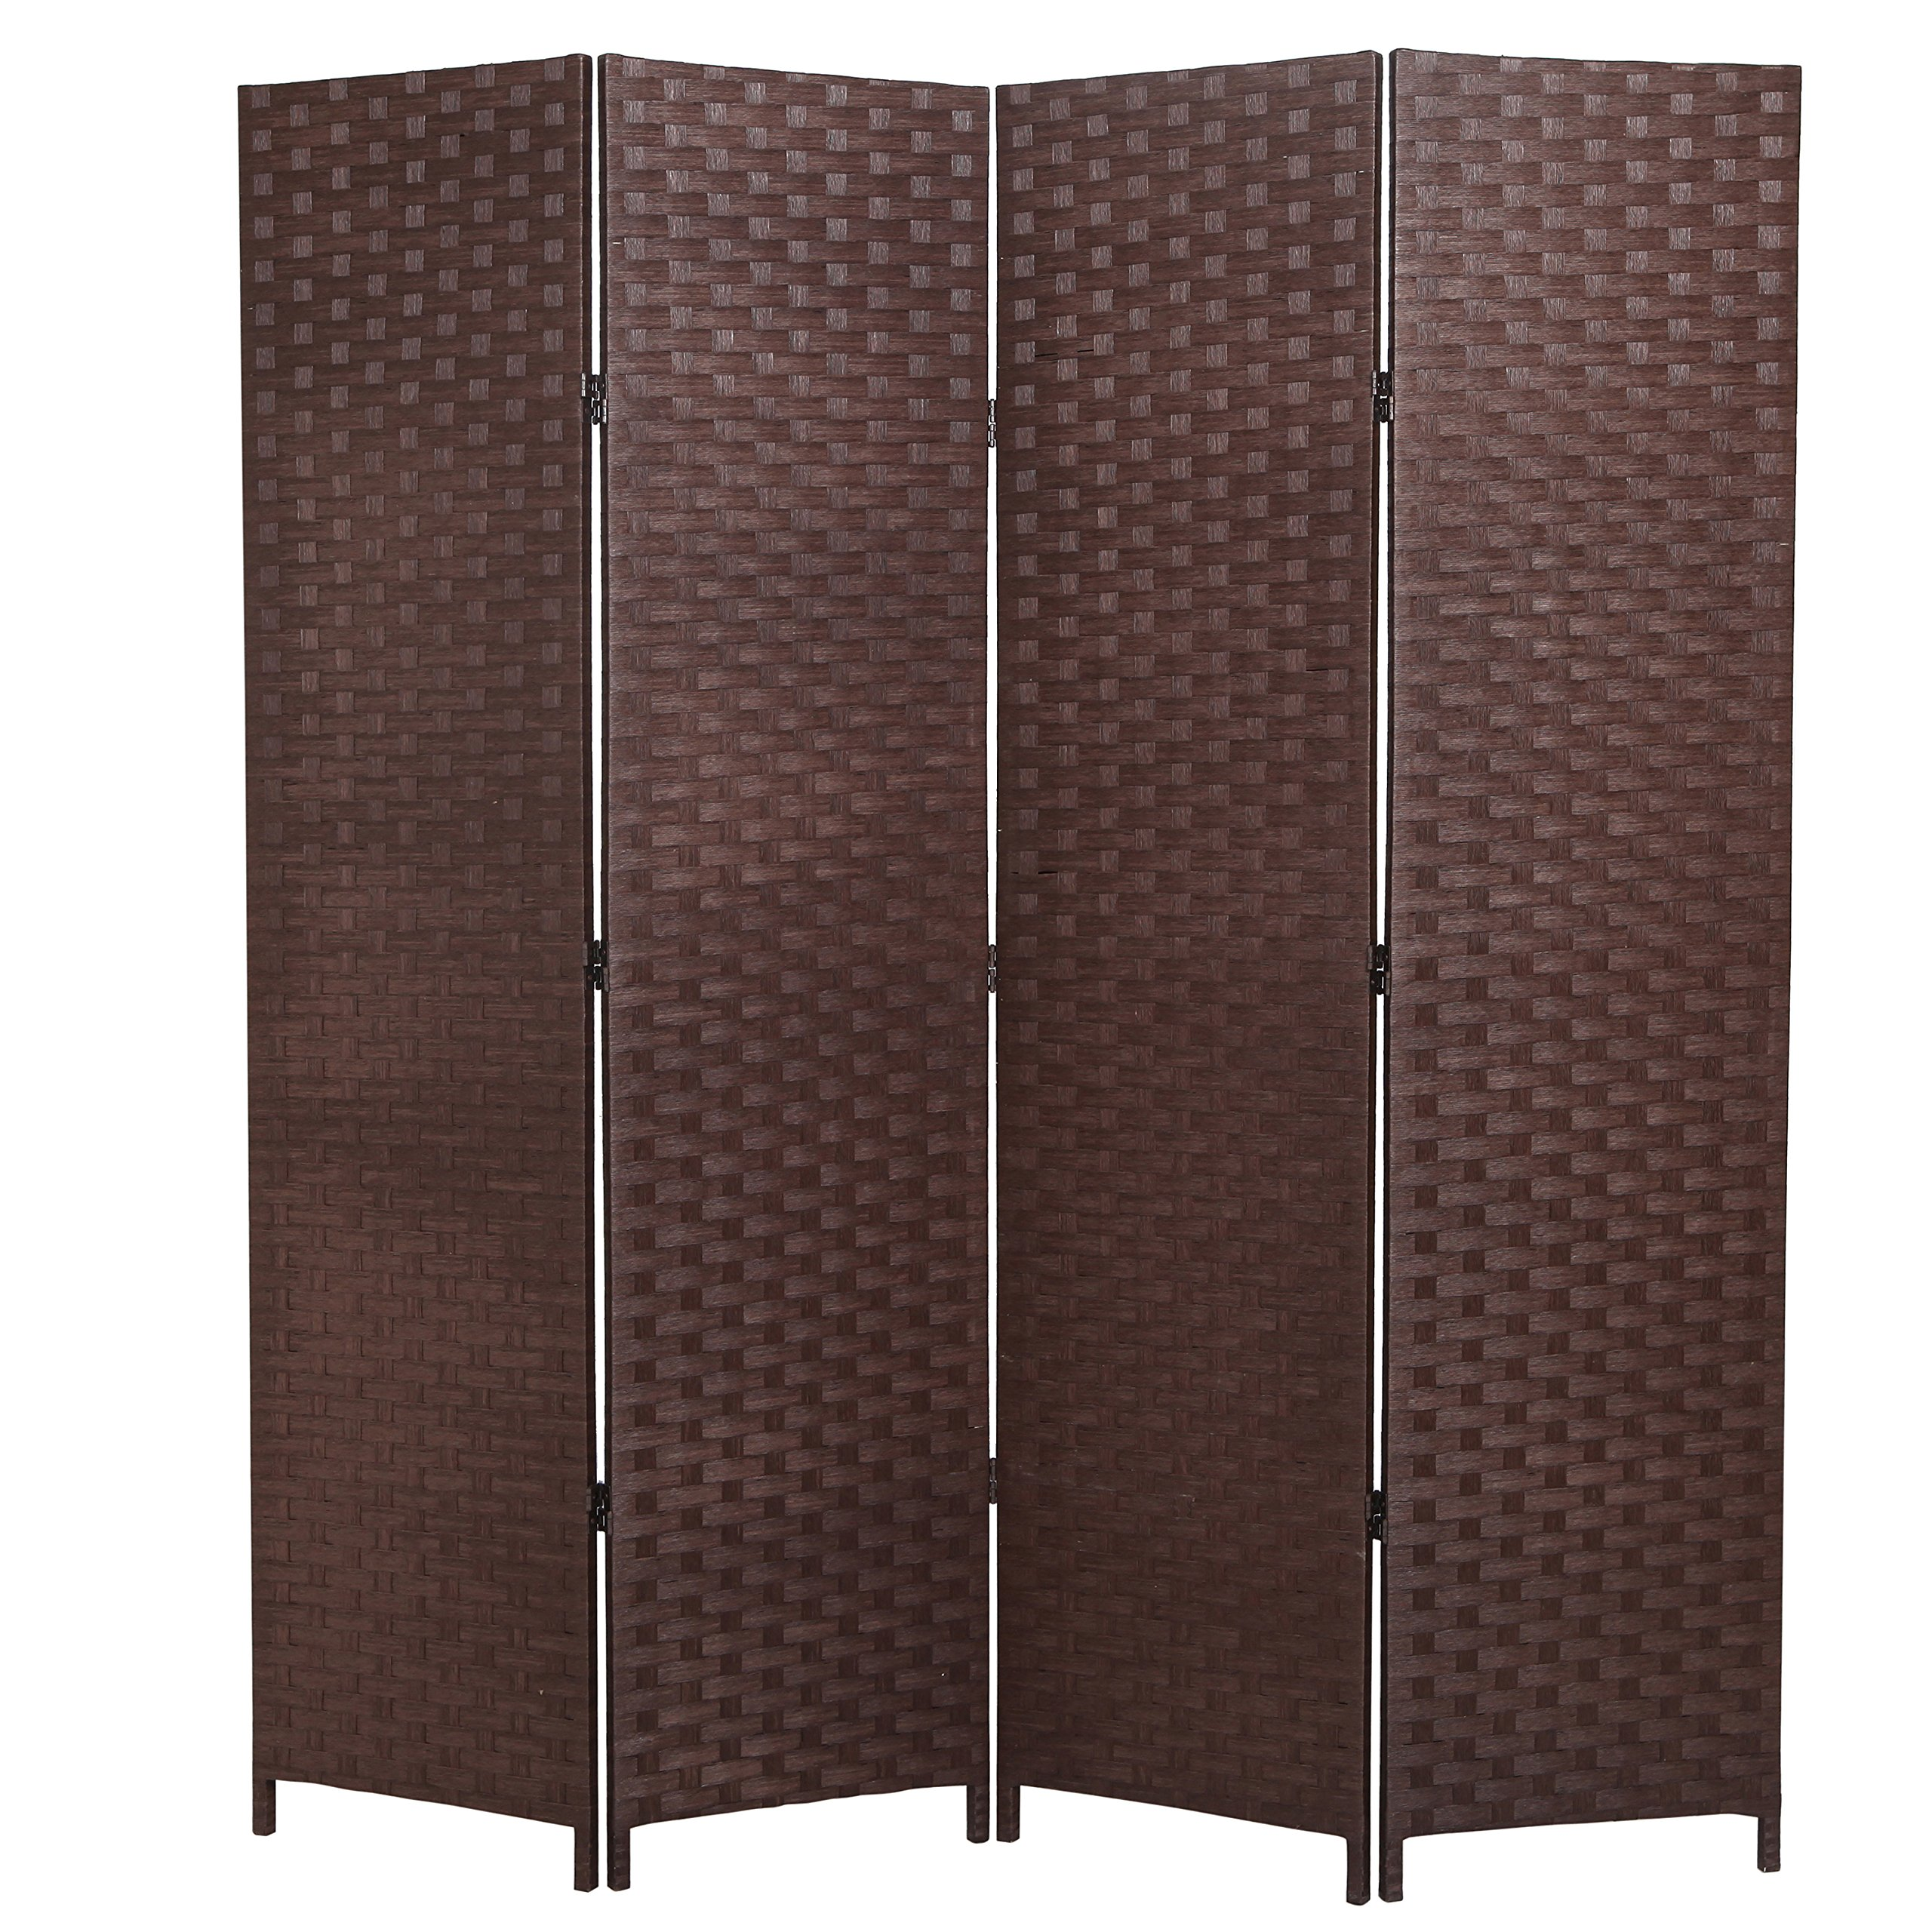 MyGift Wood 4-Panel Room Divider, Seagrass Woven Privacy Screen, Brown